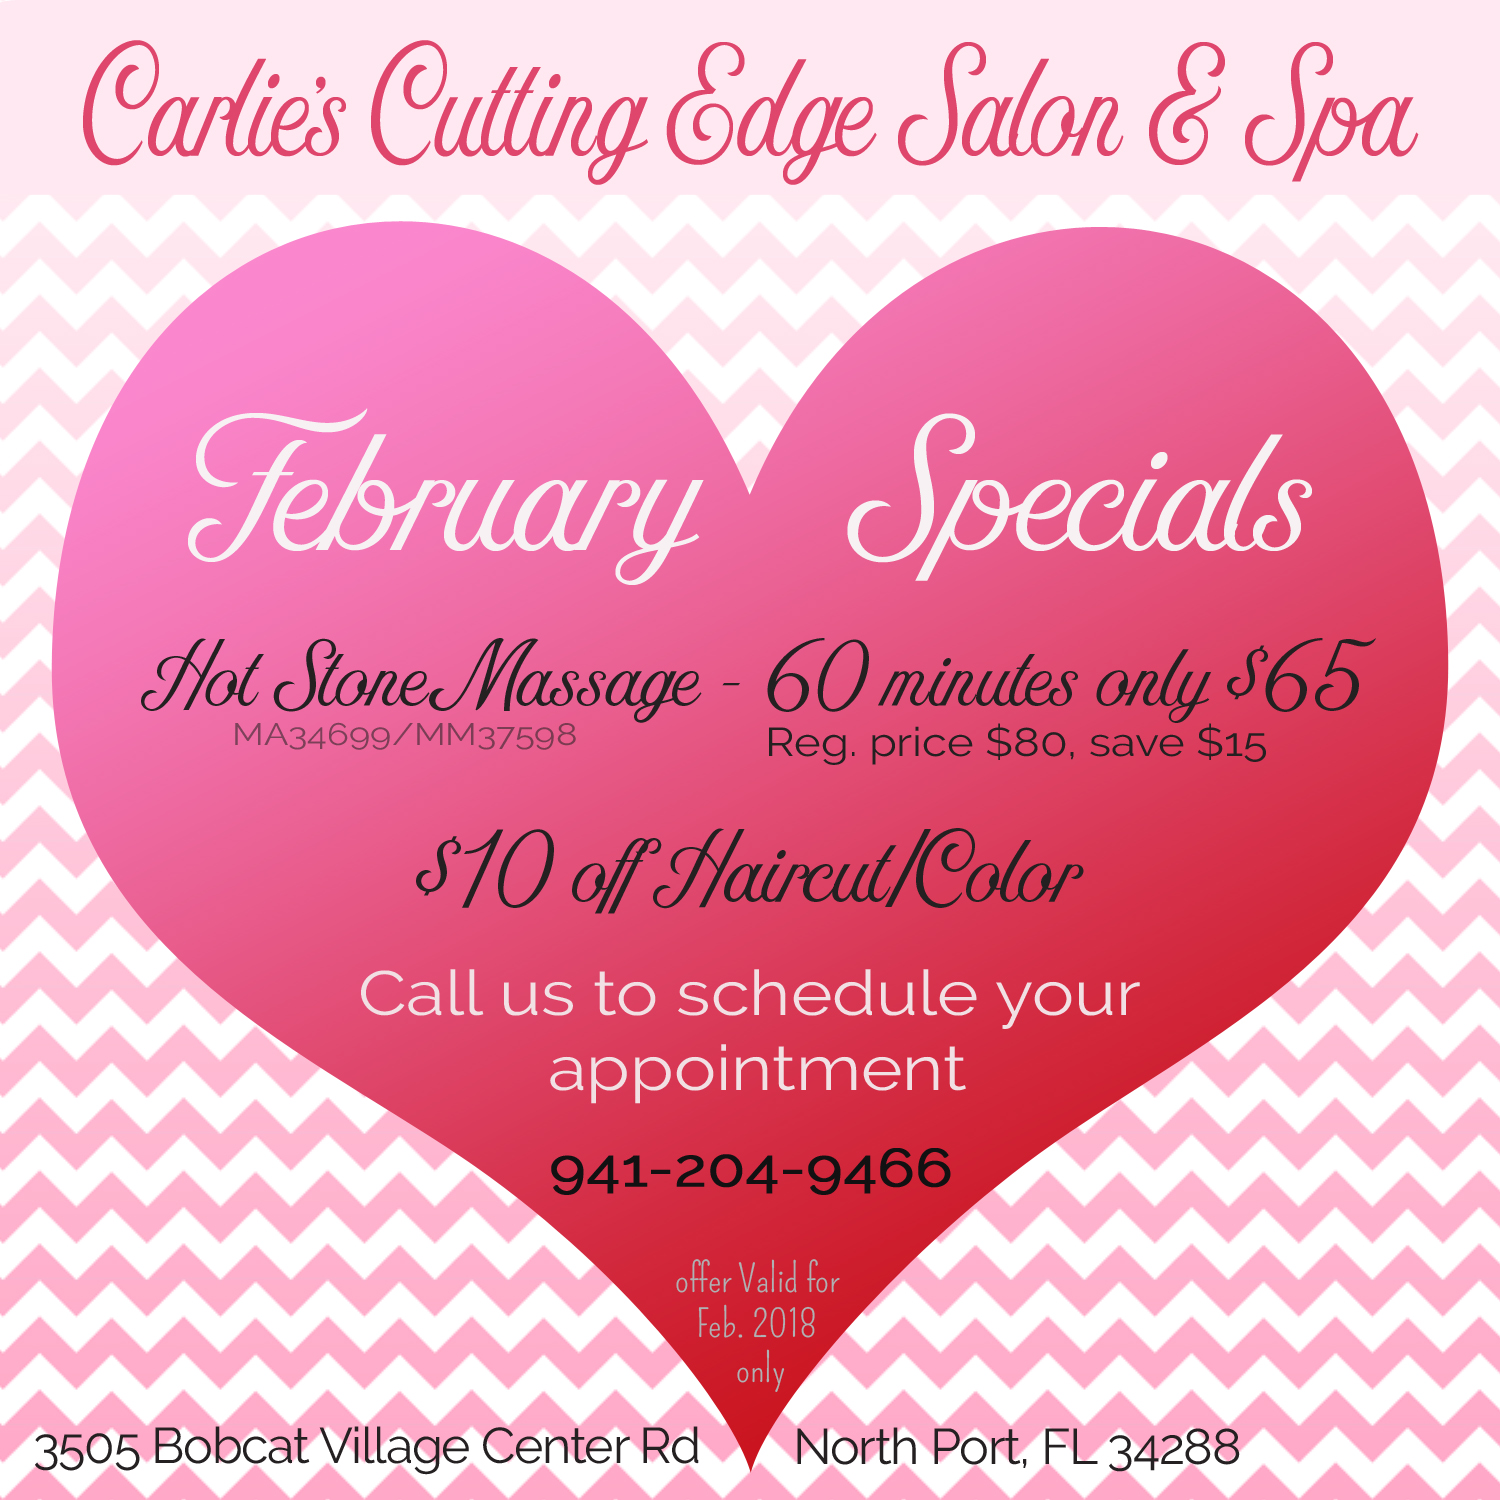 Valentine special carlie 39 s cutting edge salon spa for A cutting edge salon